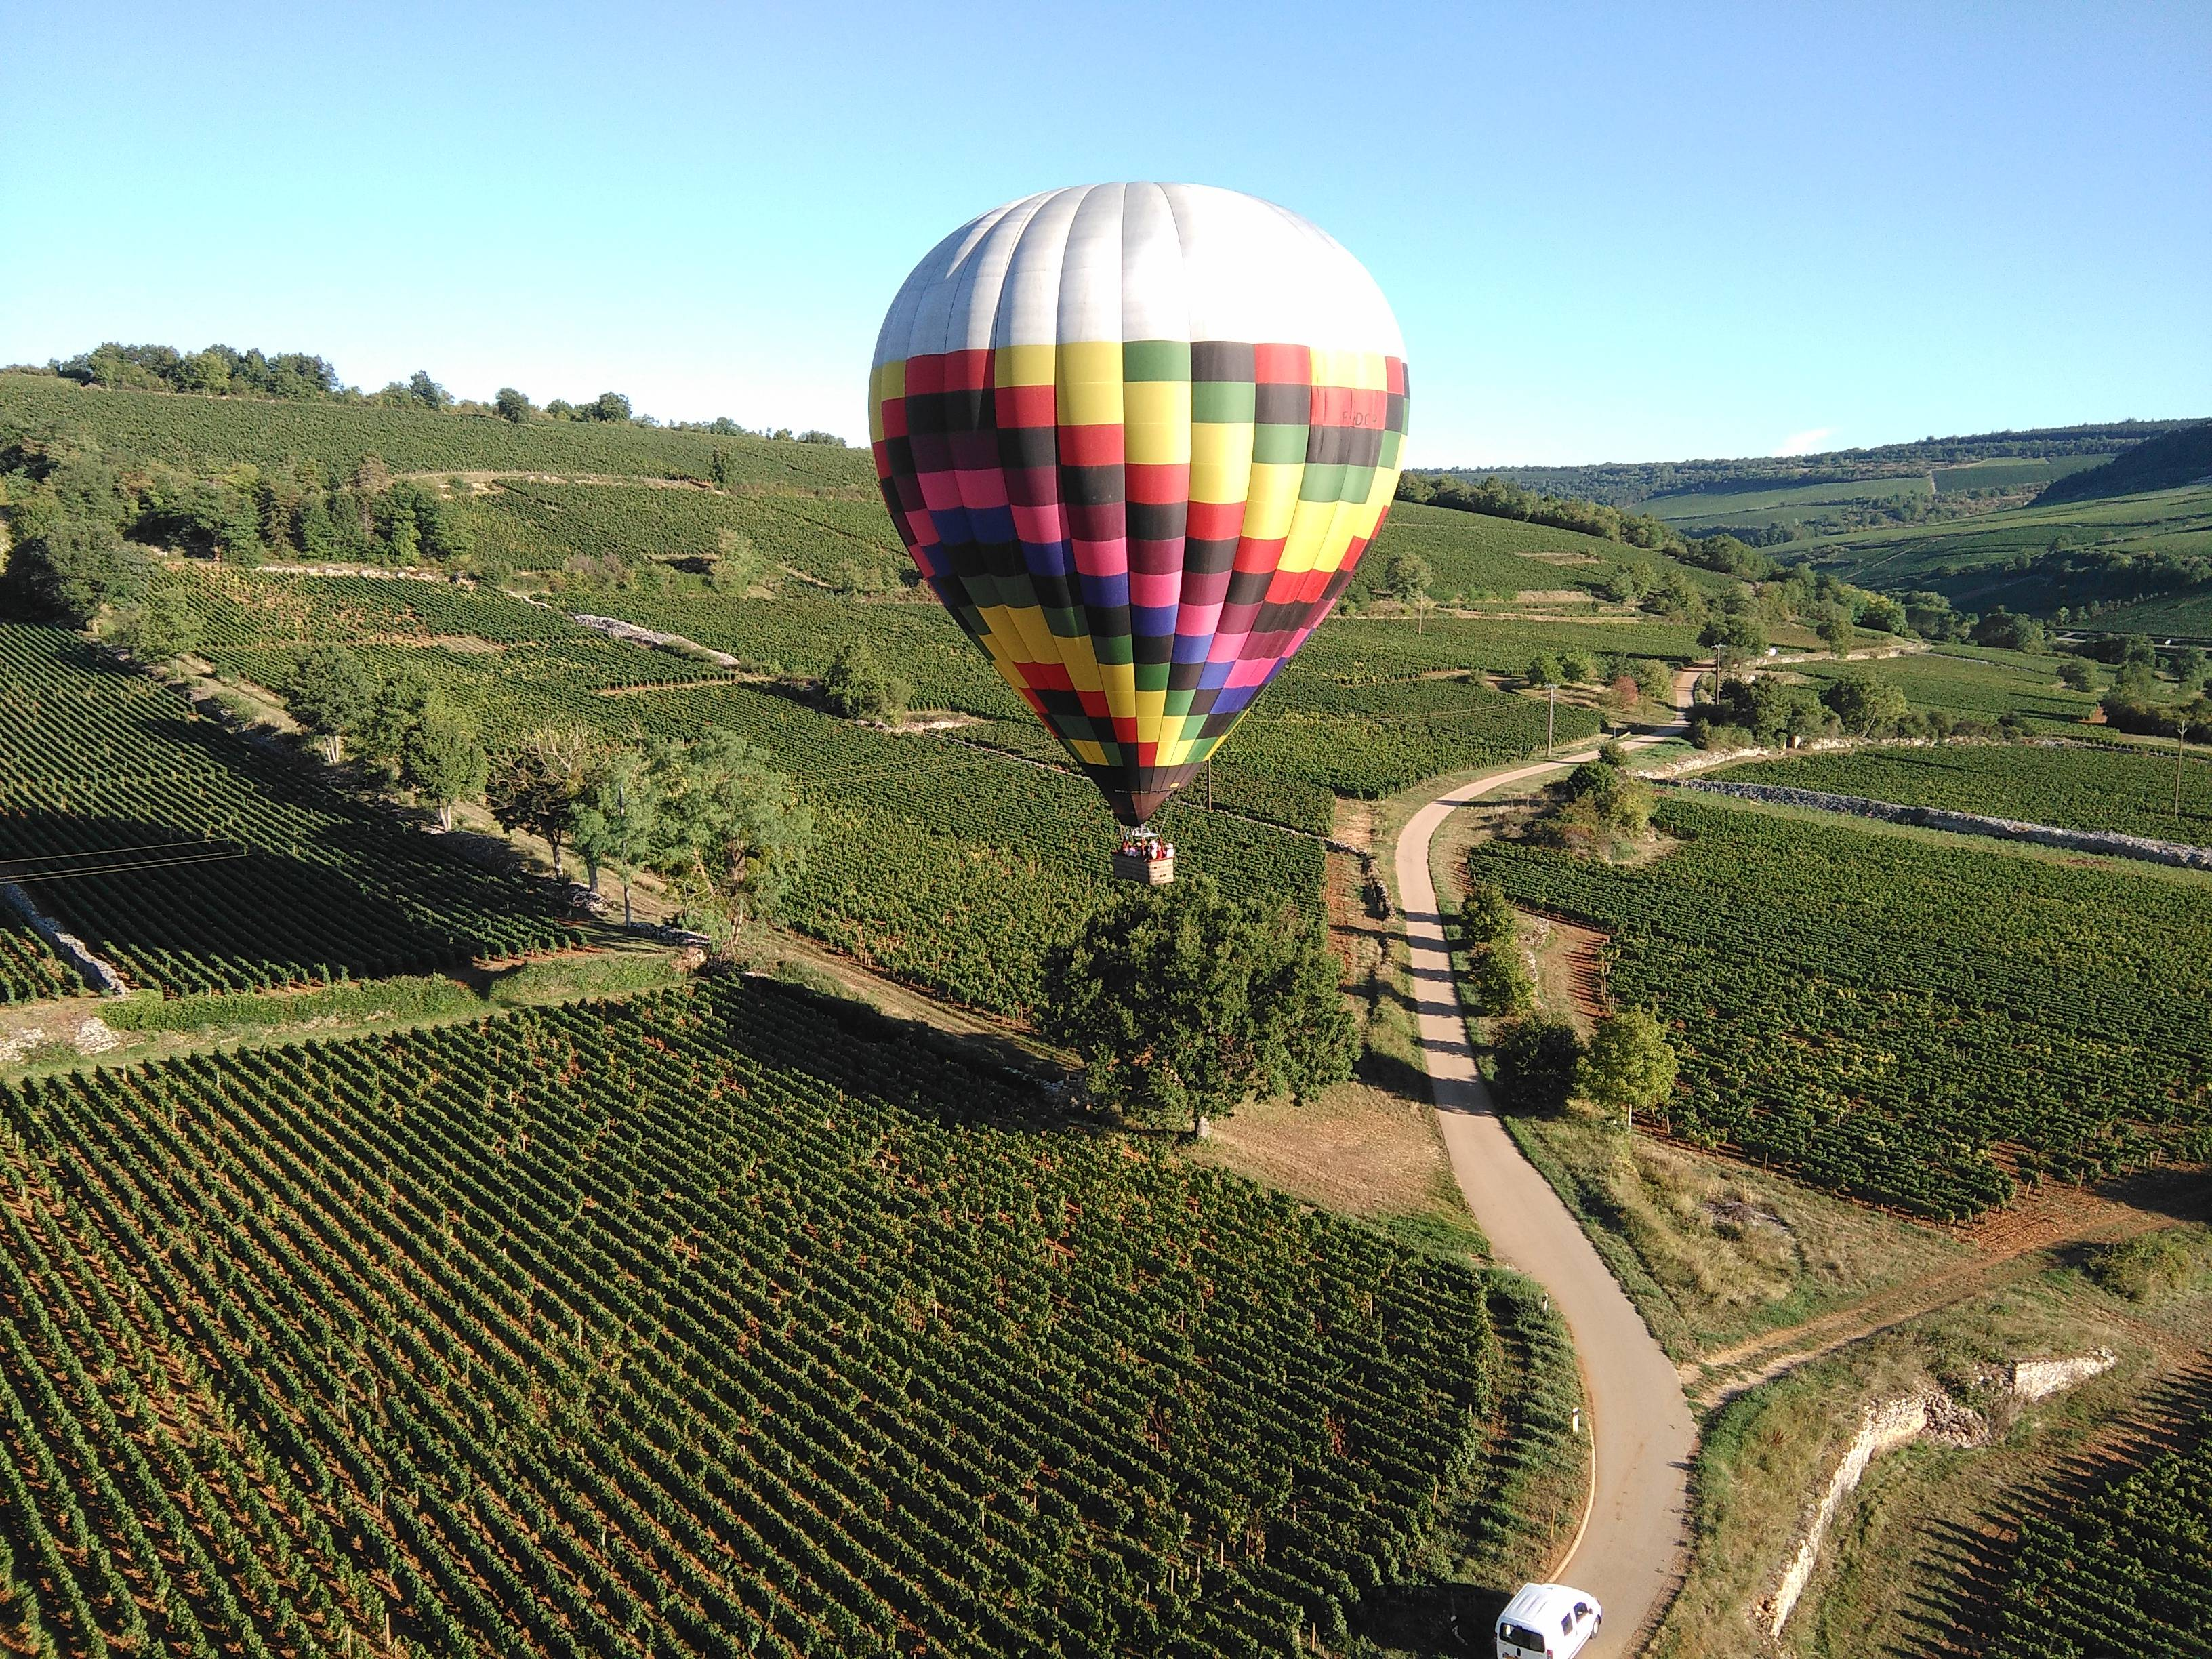 Photo 1: Vol en montgolfière à Beaune !!!